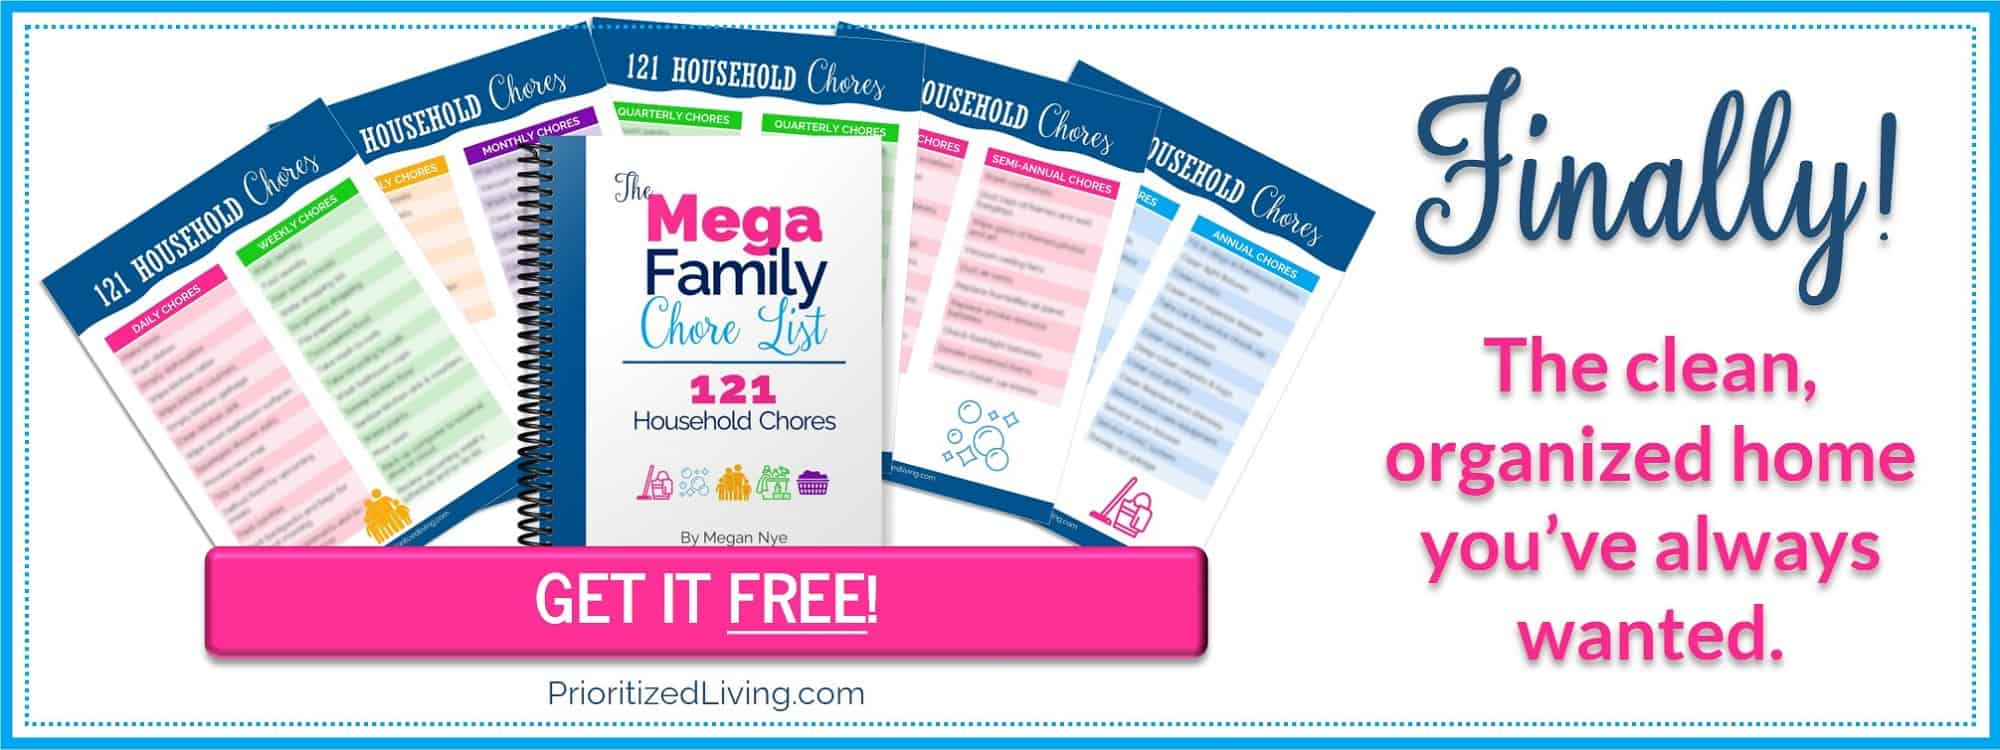 The Mega Family Chore List: 121 Household Chores